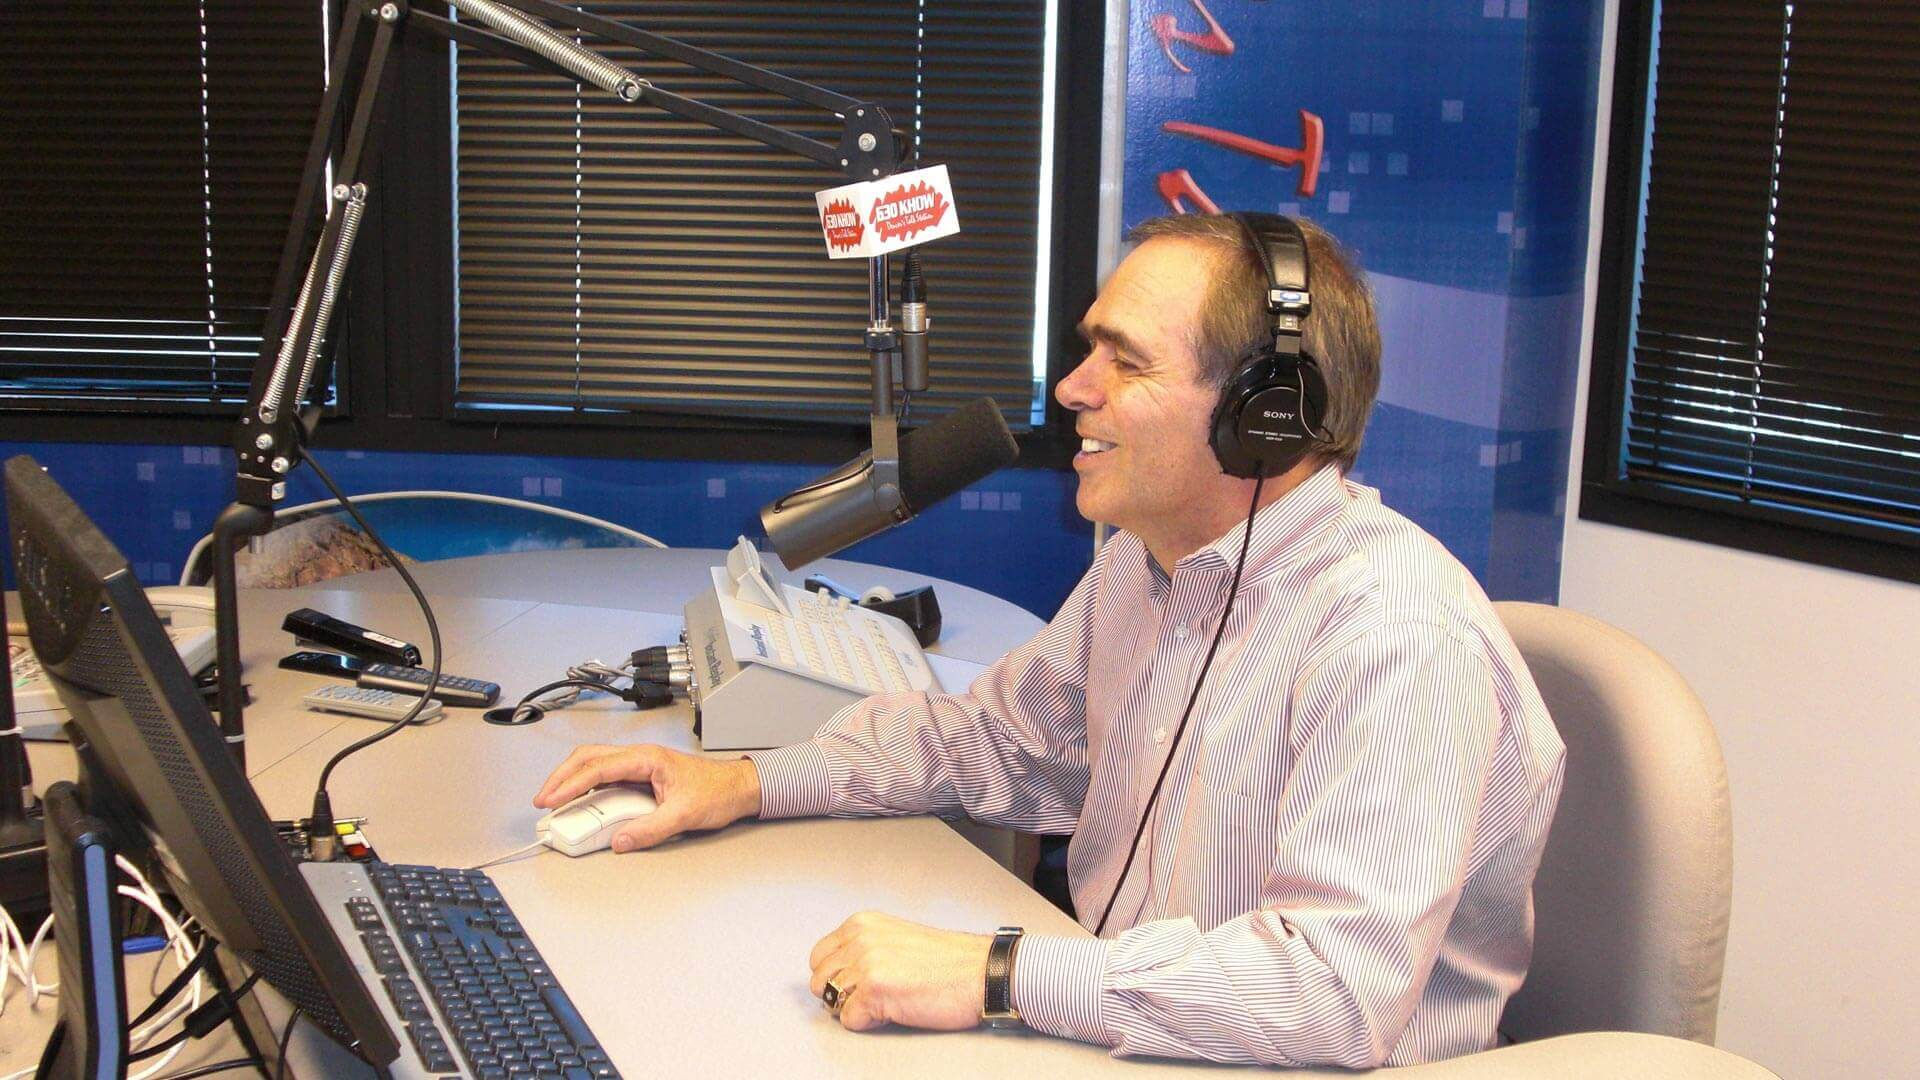 Brad Pollock in the radio studio